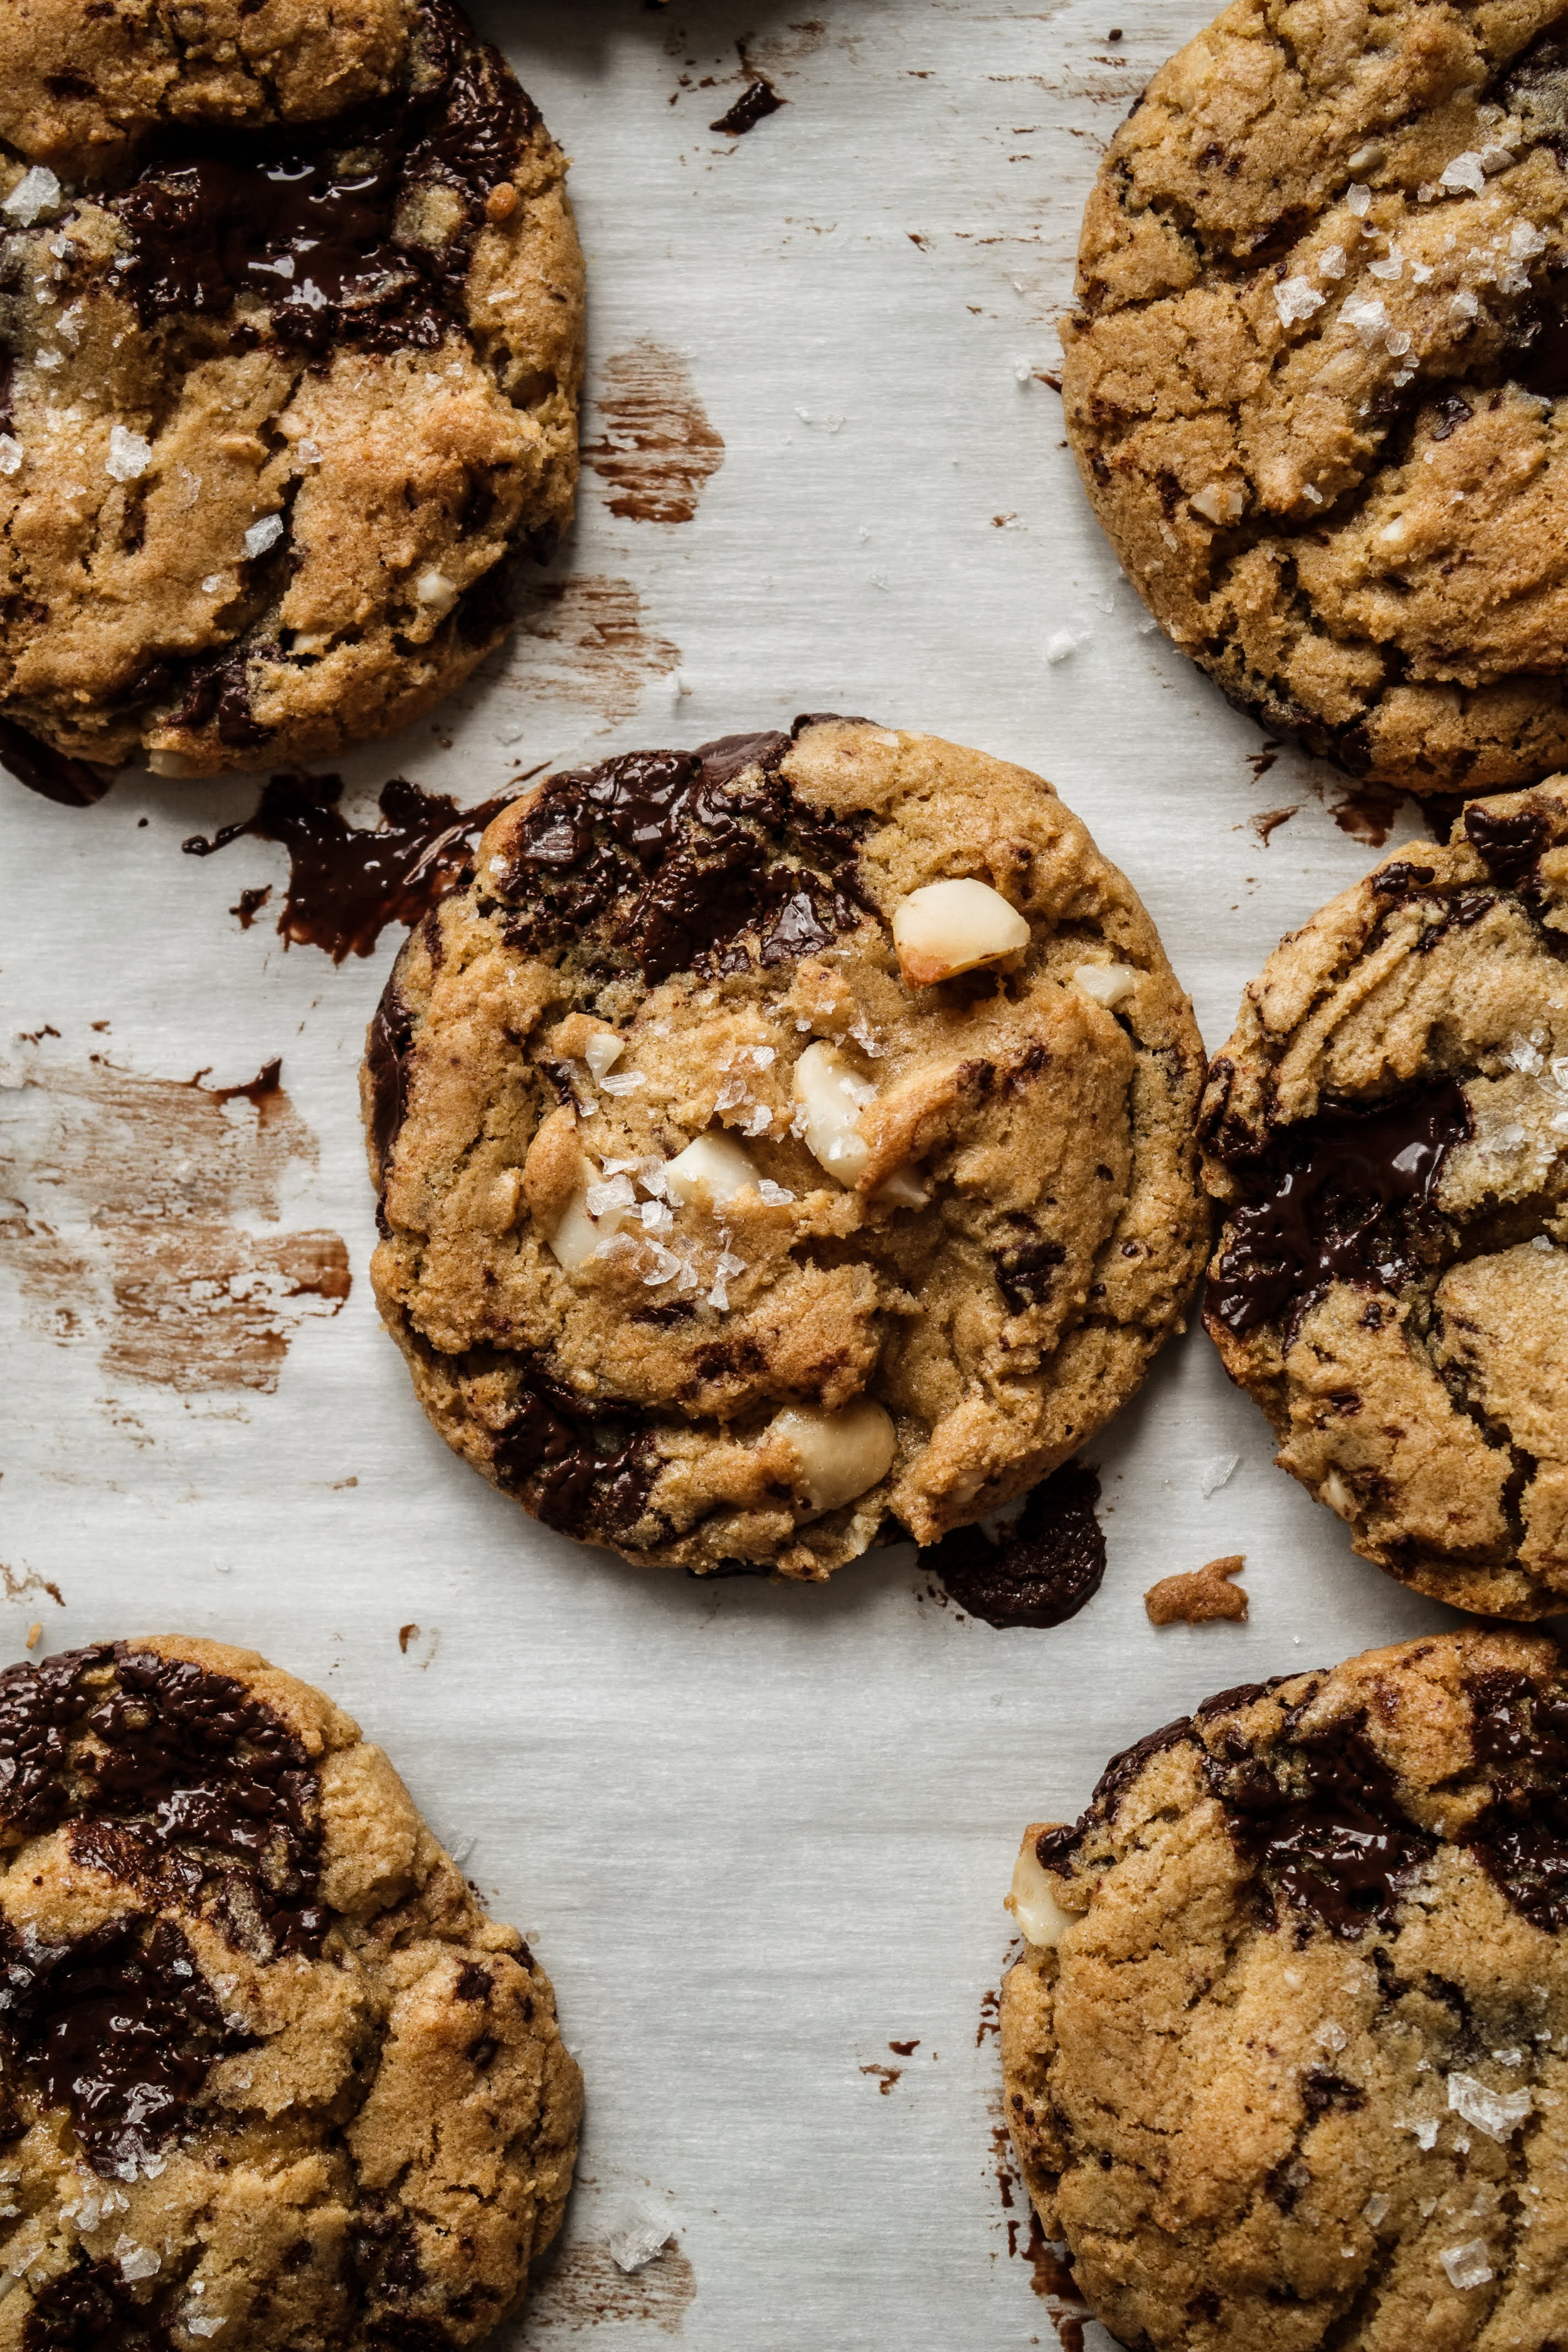 Chocolate chip macadamia cookies 7.jpg